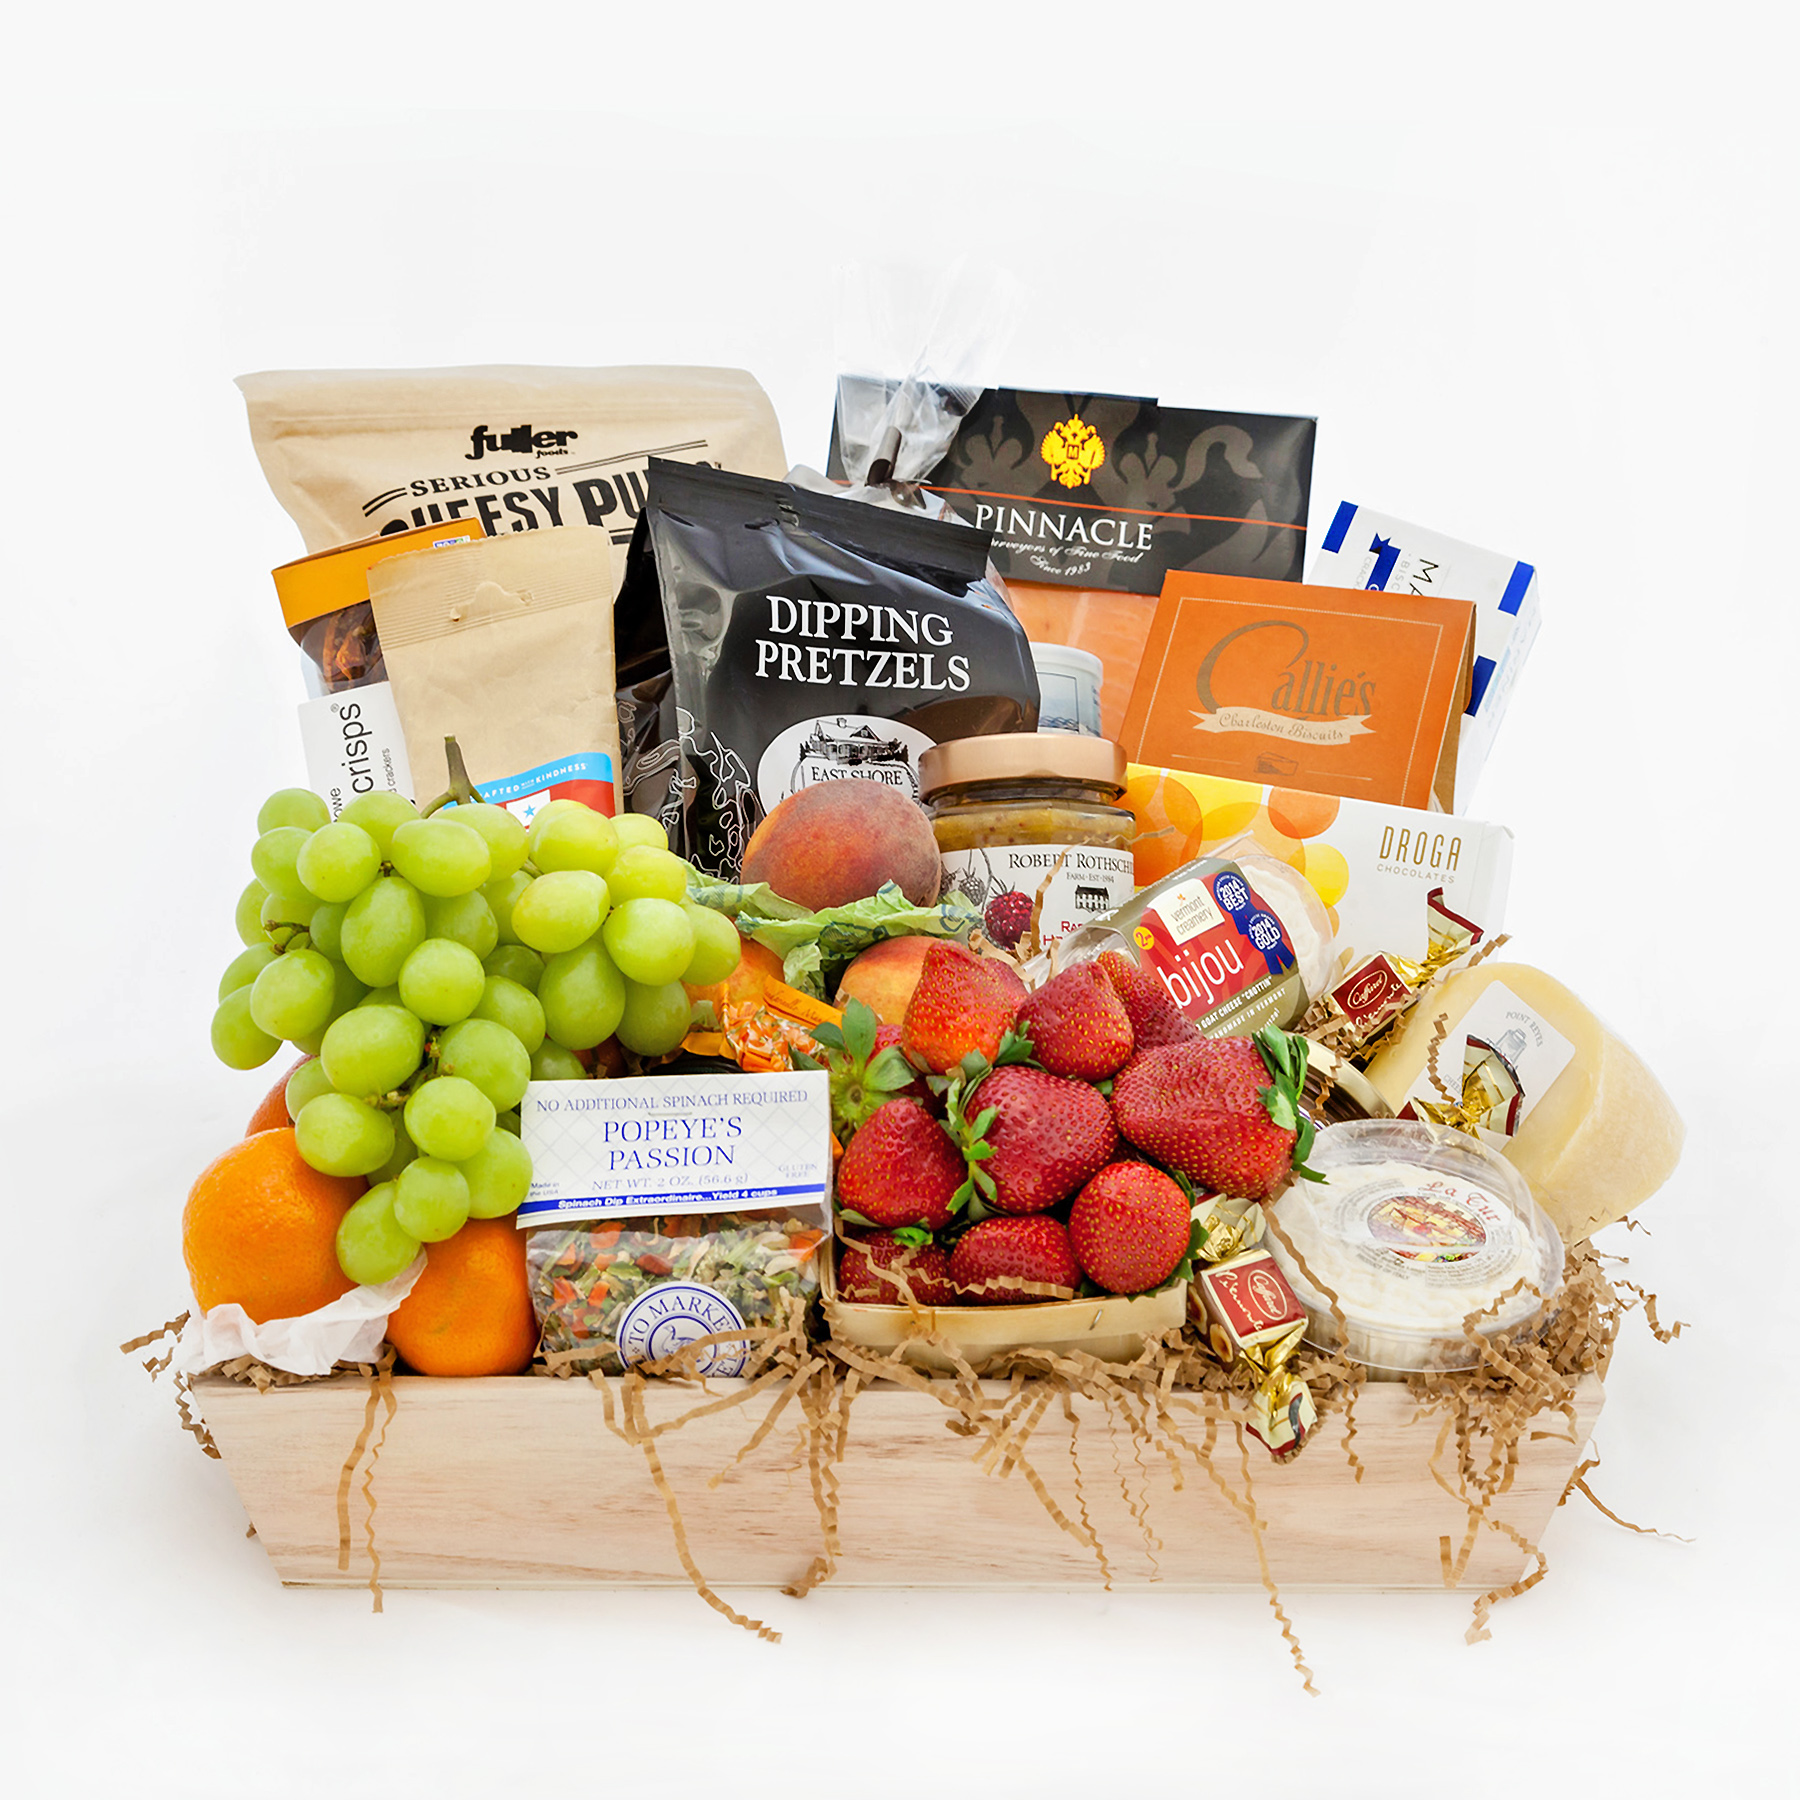 Palmer's Gift Baskets: Made-to-Order and Completely Customizable!